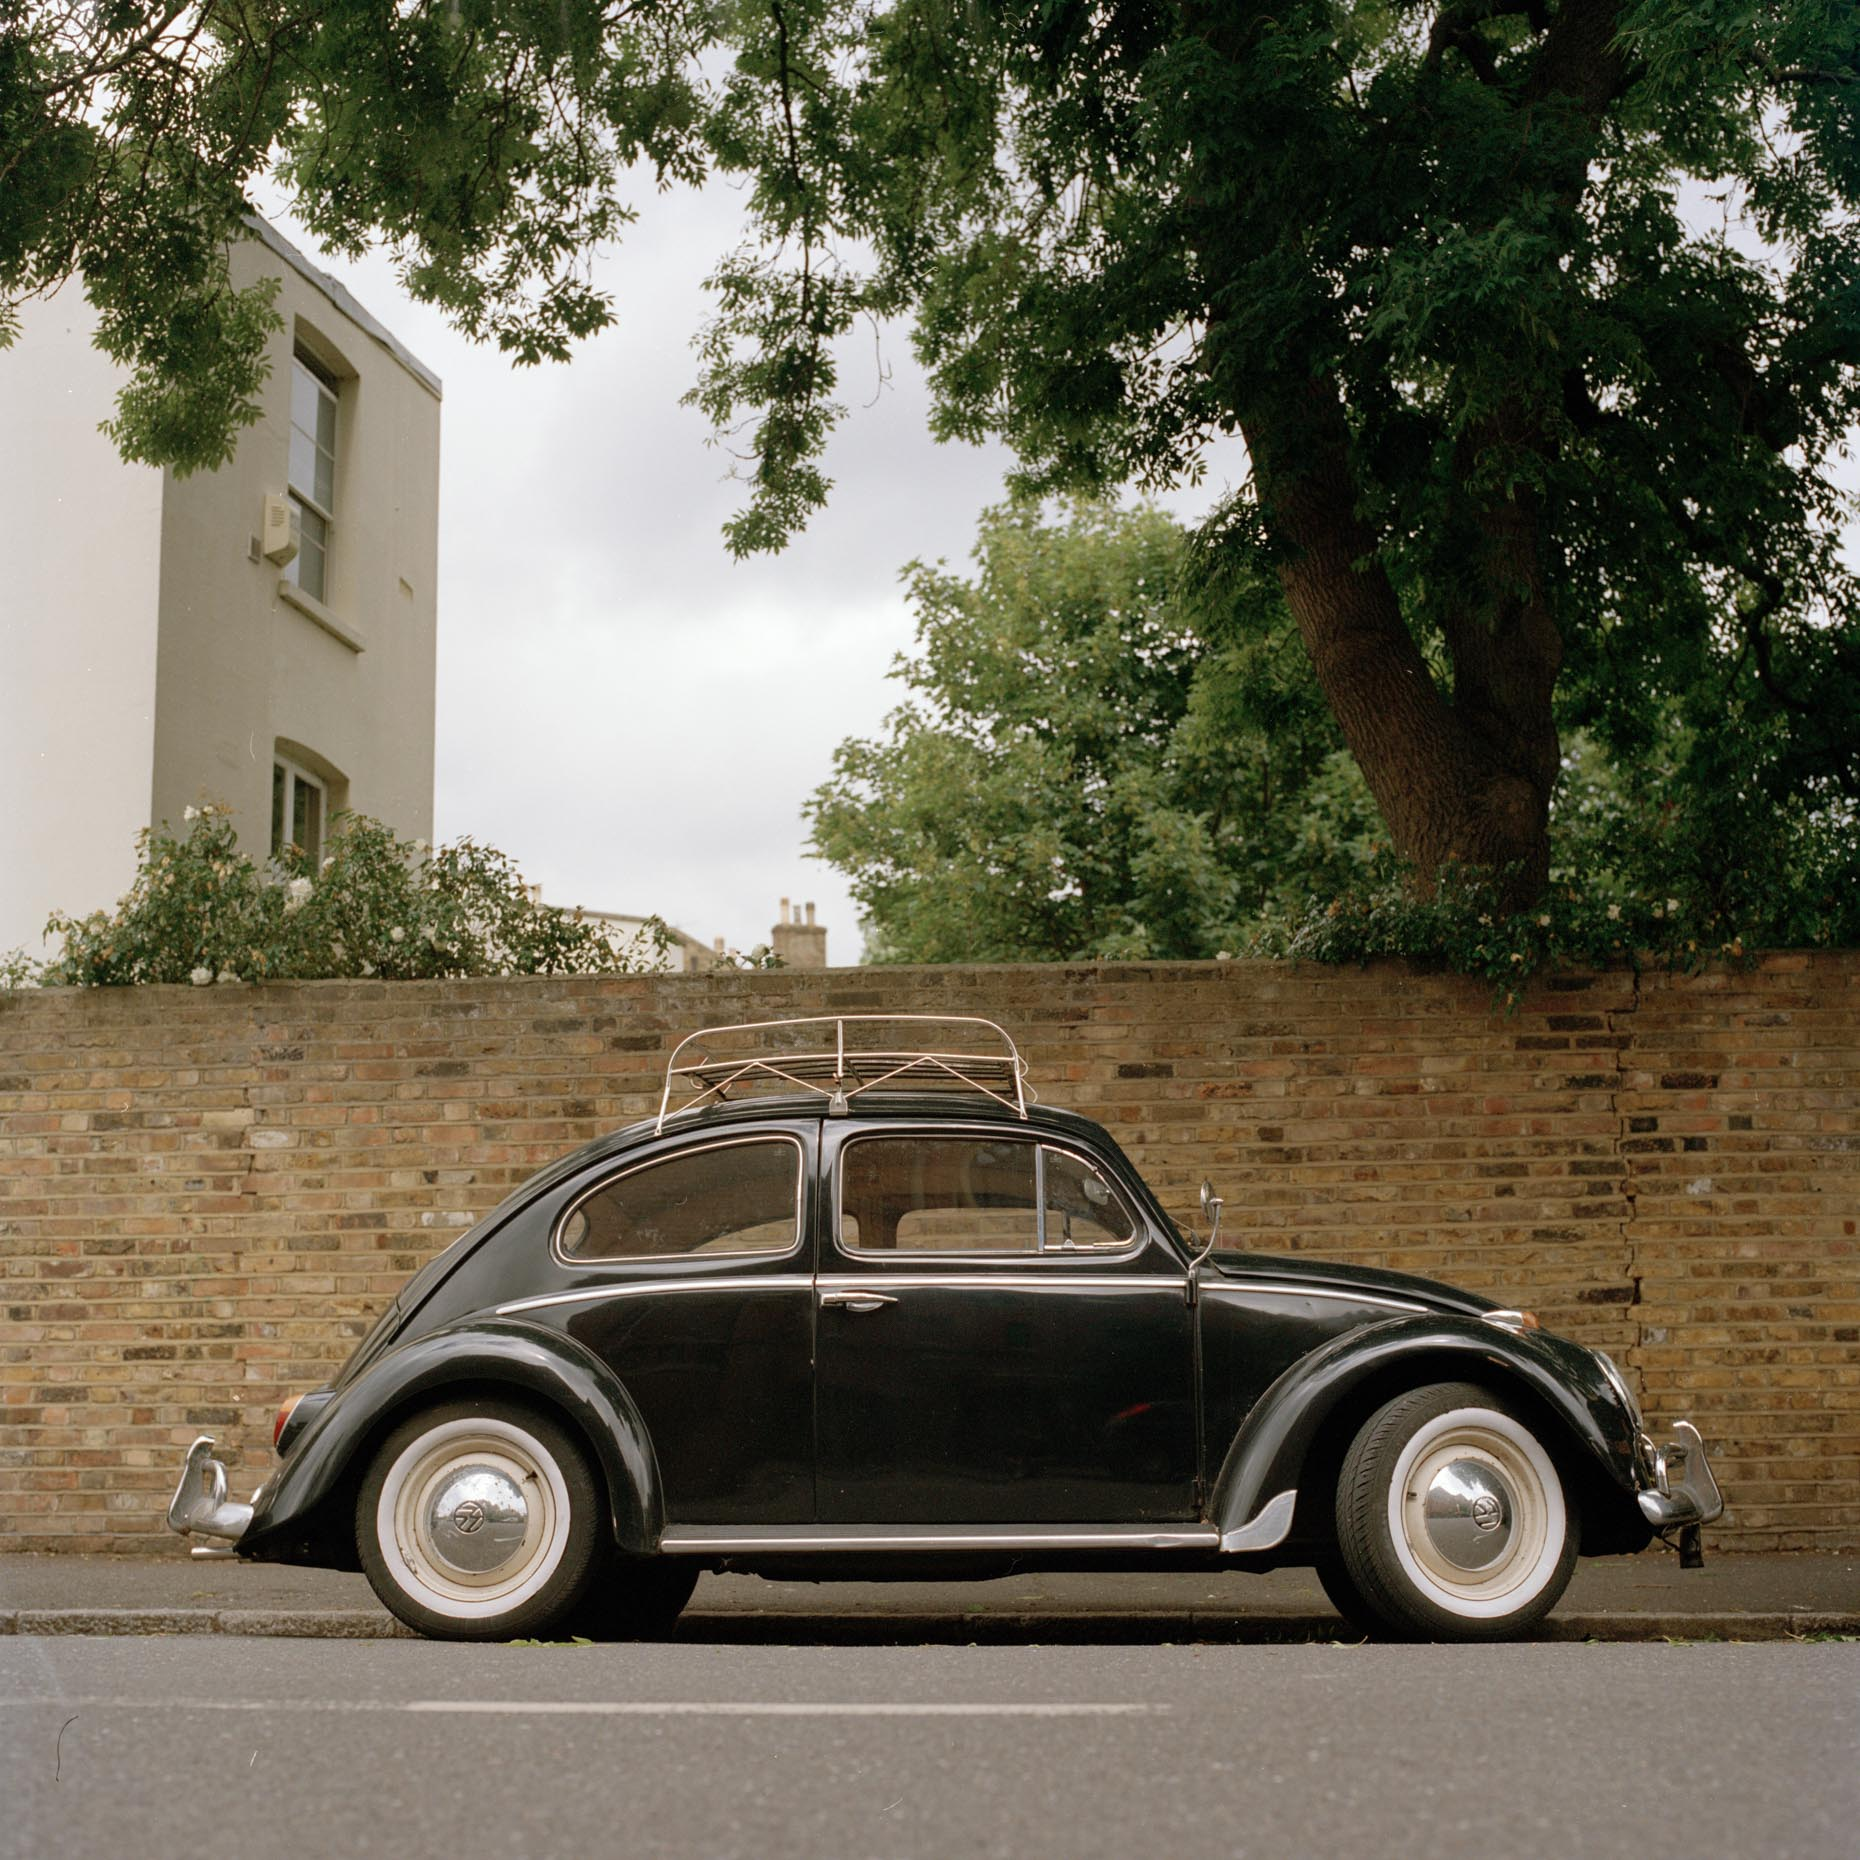 A black volkswagon Beetle sits on a Stoke Newington Street in London, UK.